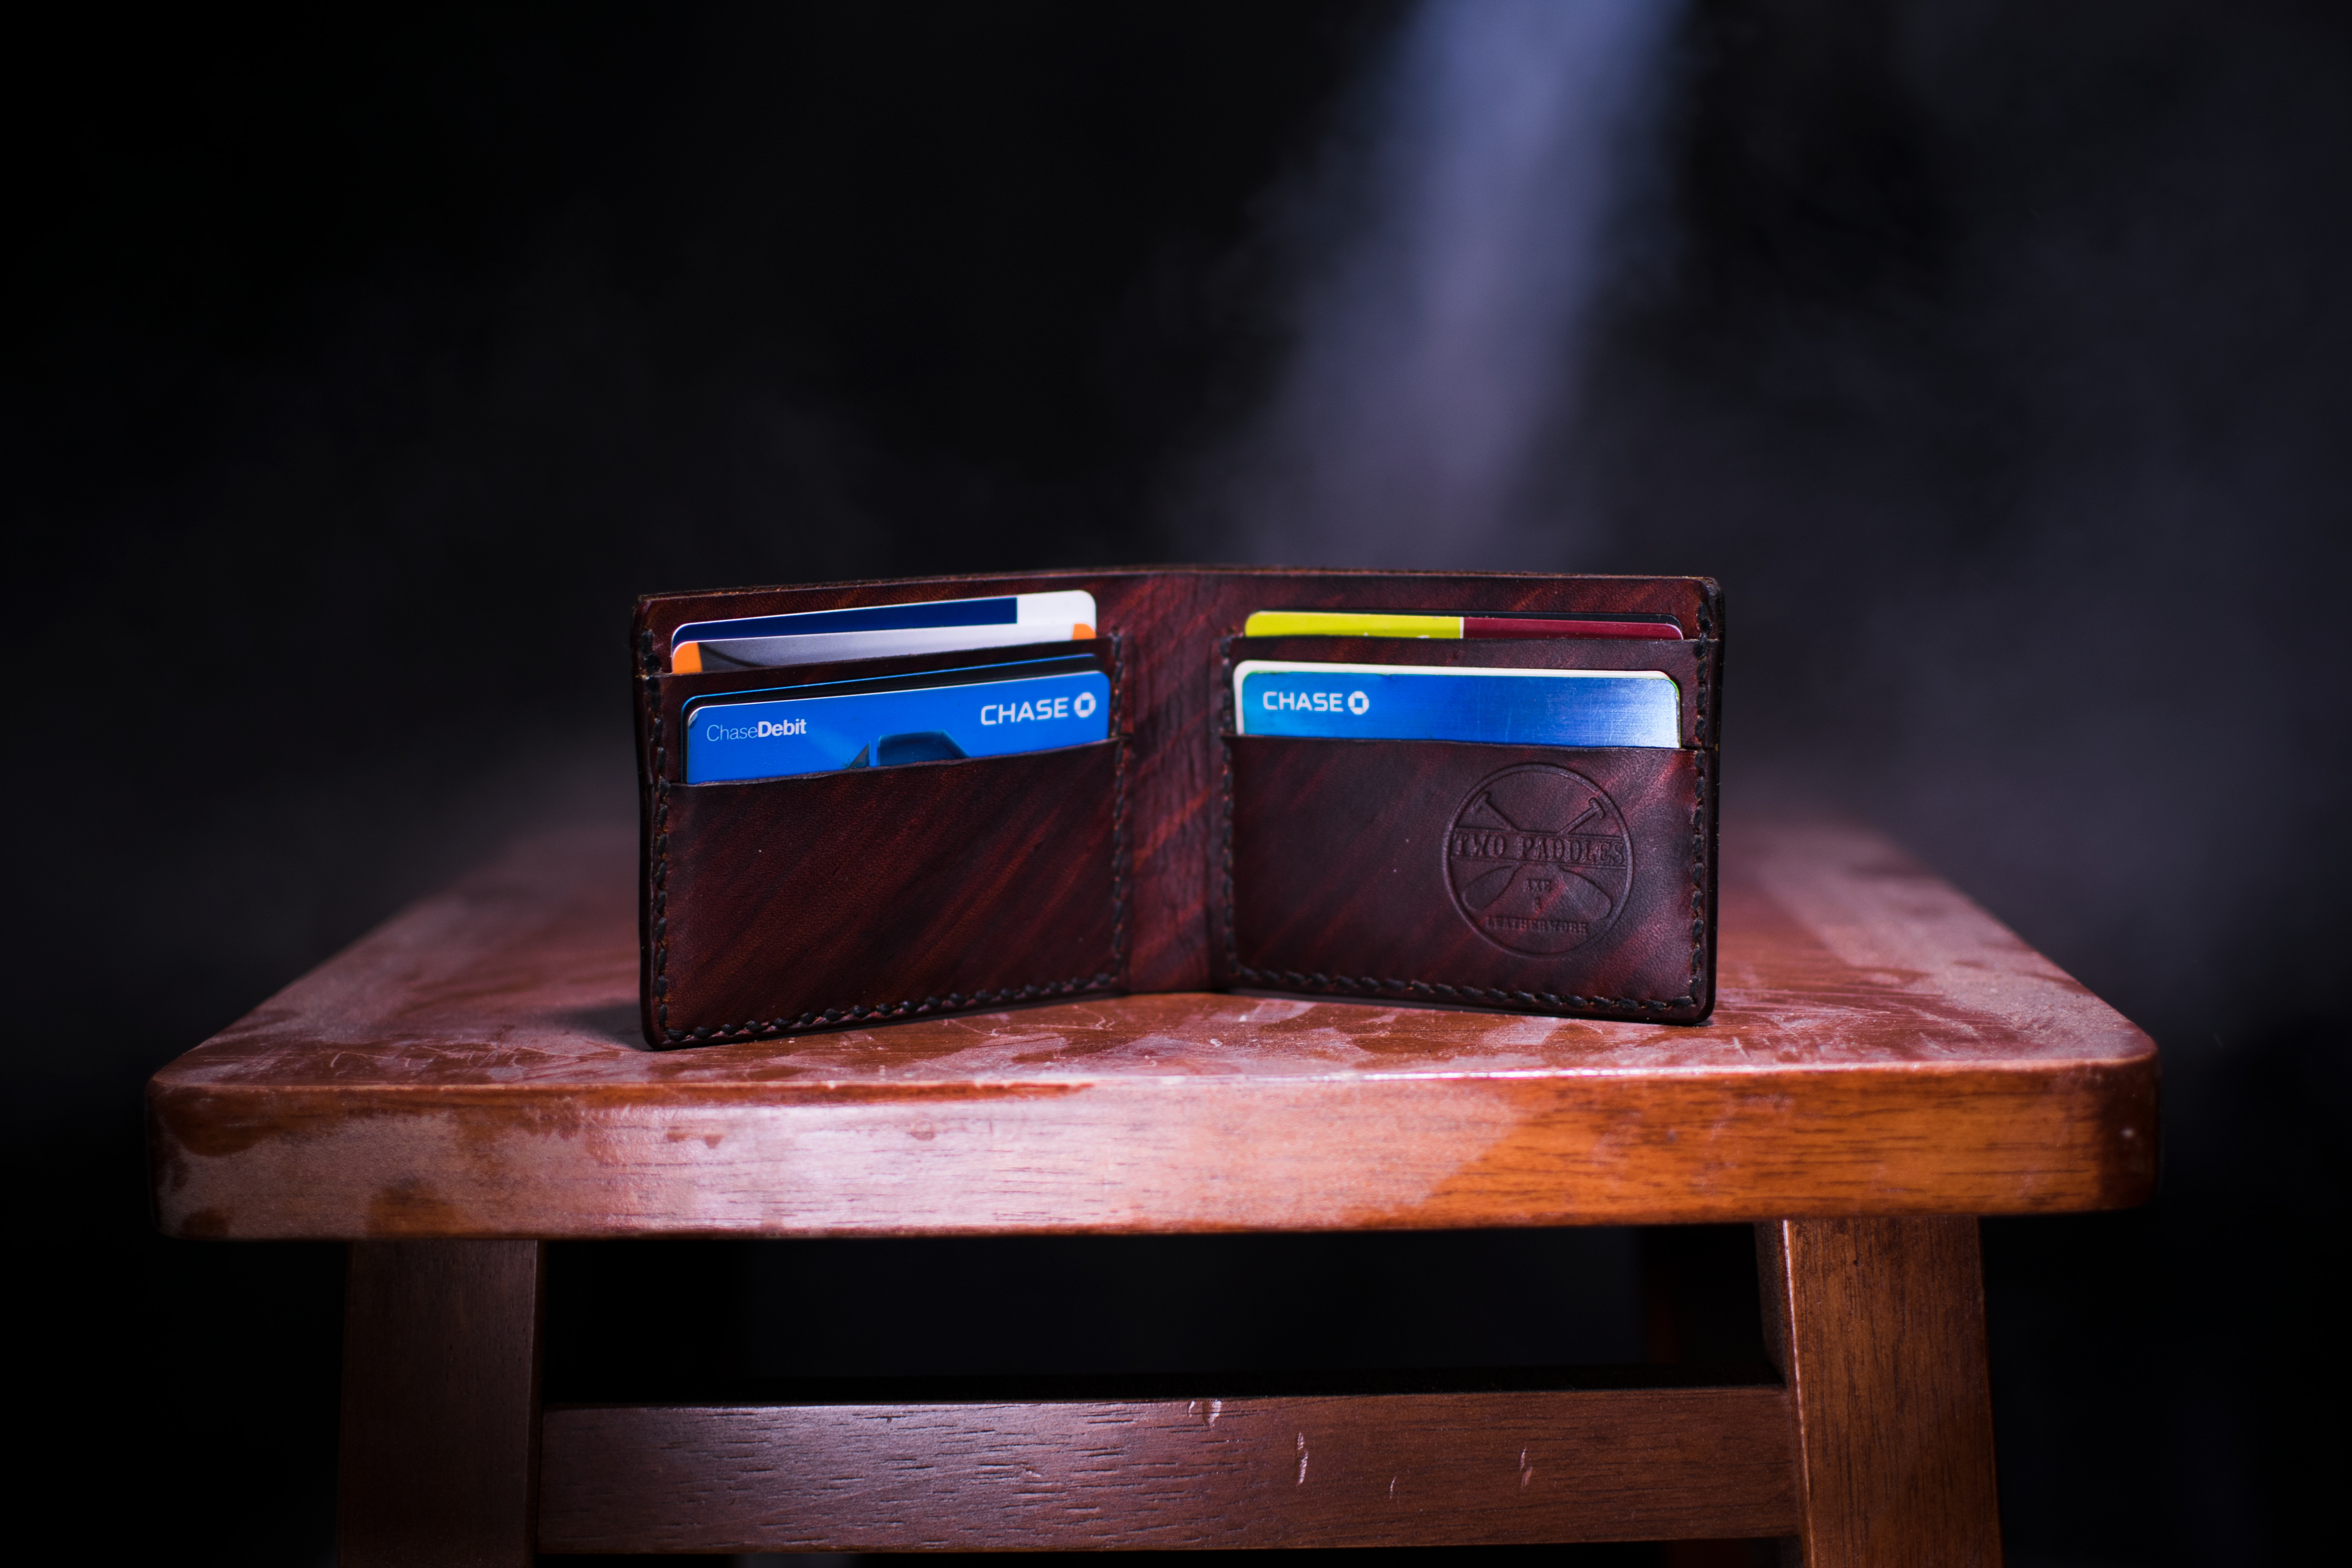 What's the Average Longevity of a Debit Card vs. a Reloadable Prepaid Card?